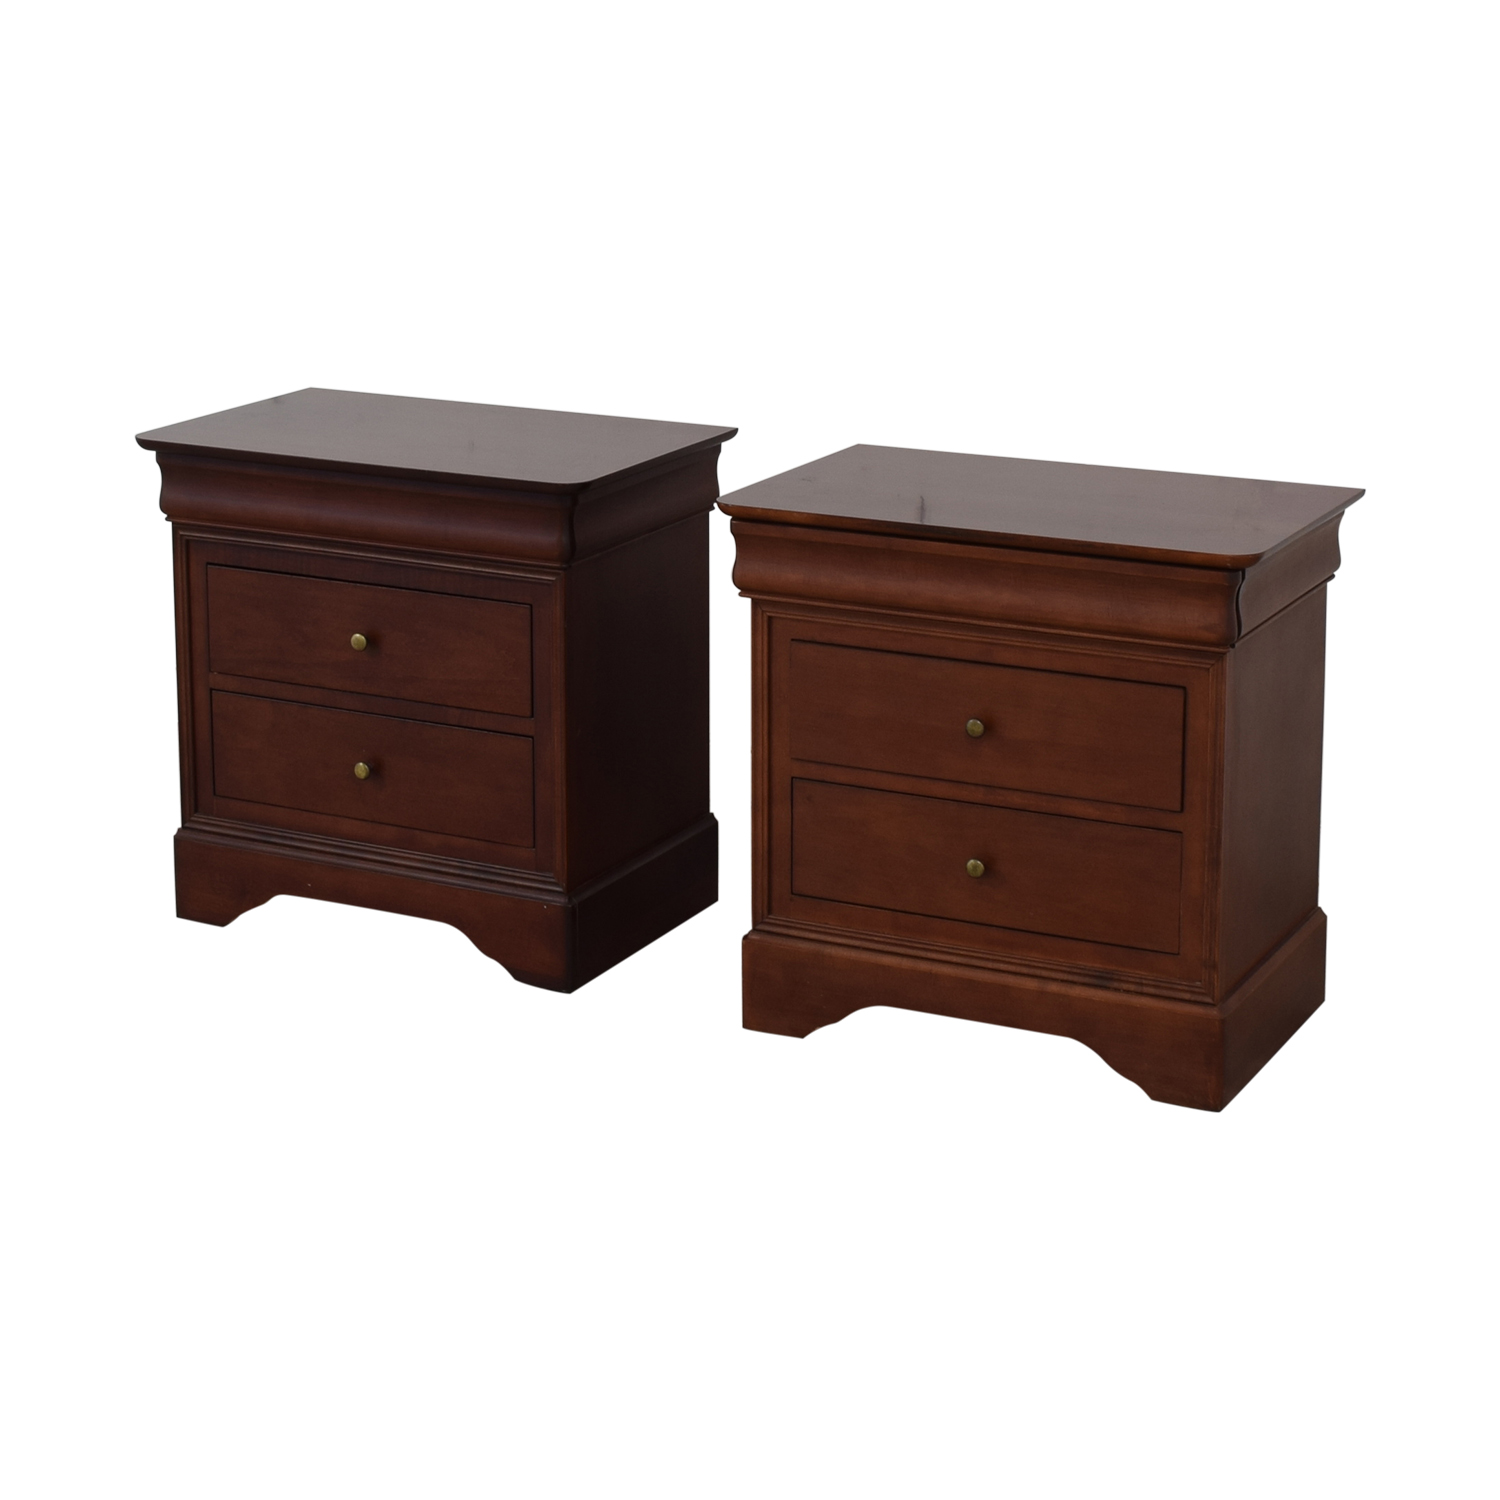 buy  Wooden Two Drawer Night Stands or End Tables online